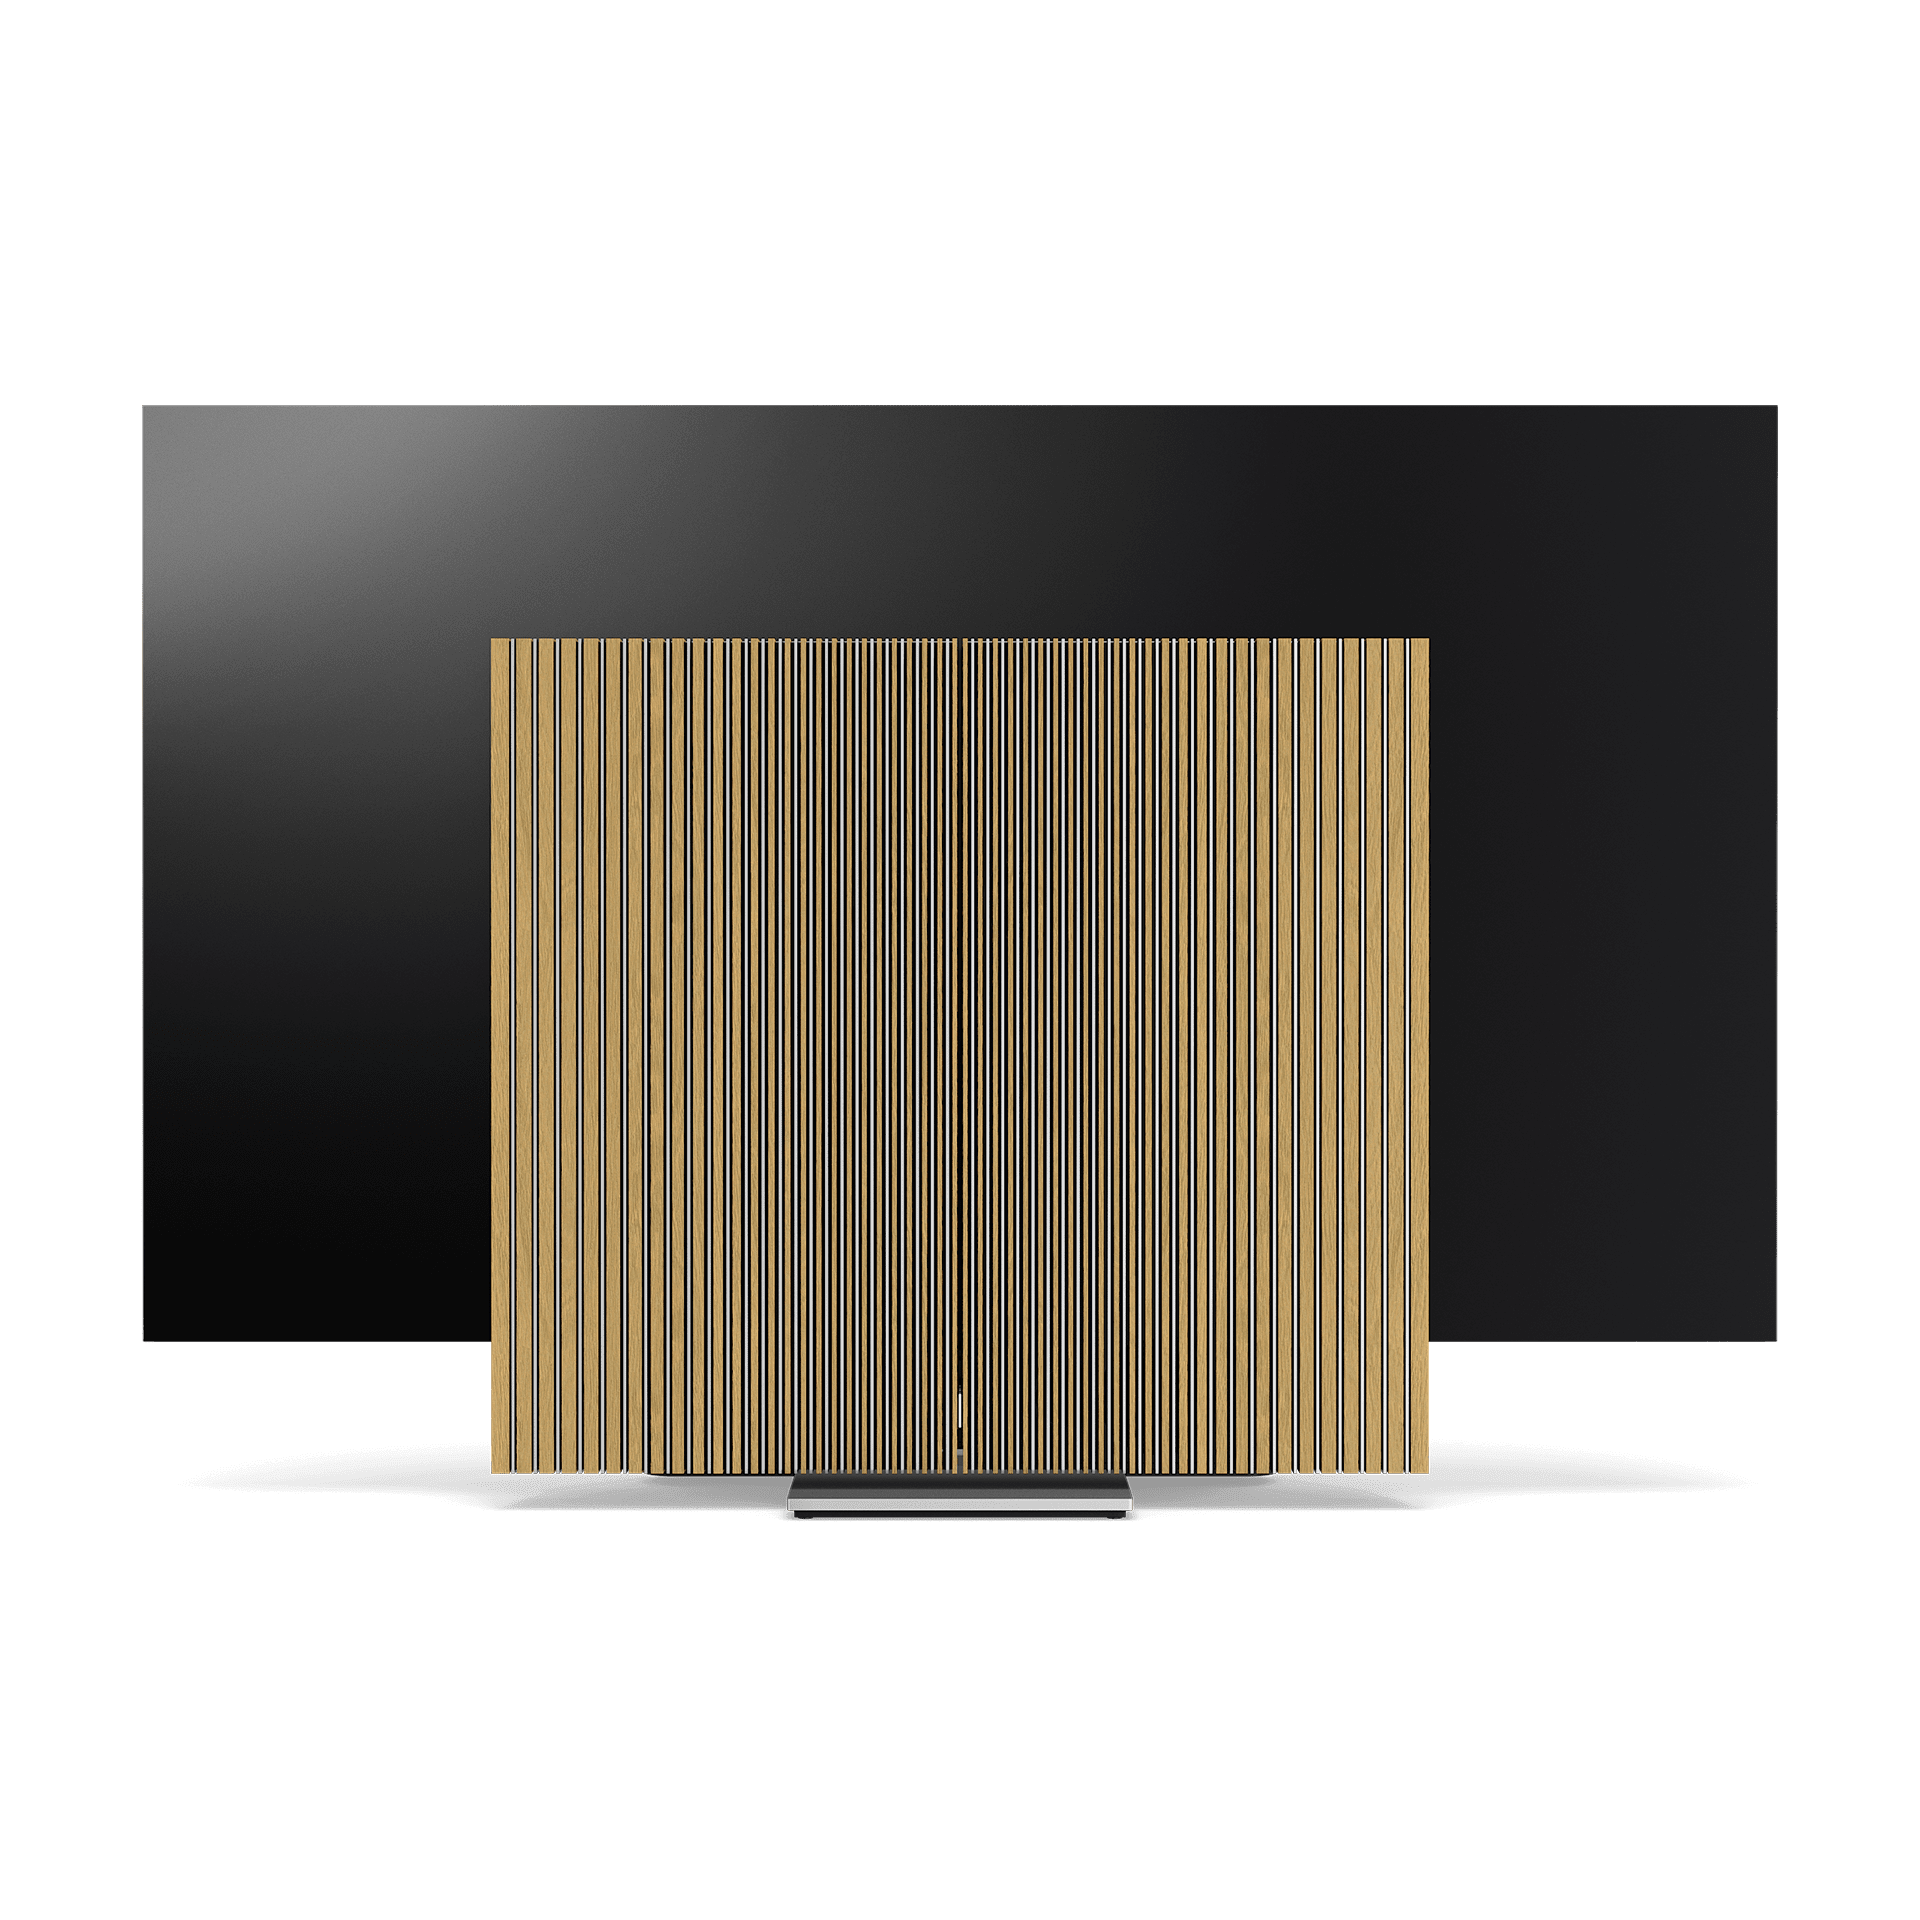 Küche Gebraucht Kaufen Gießen Bang Olufsen High End Headphones Speakers And Televisions